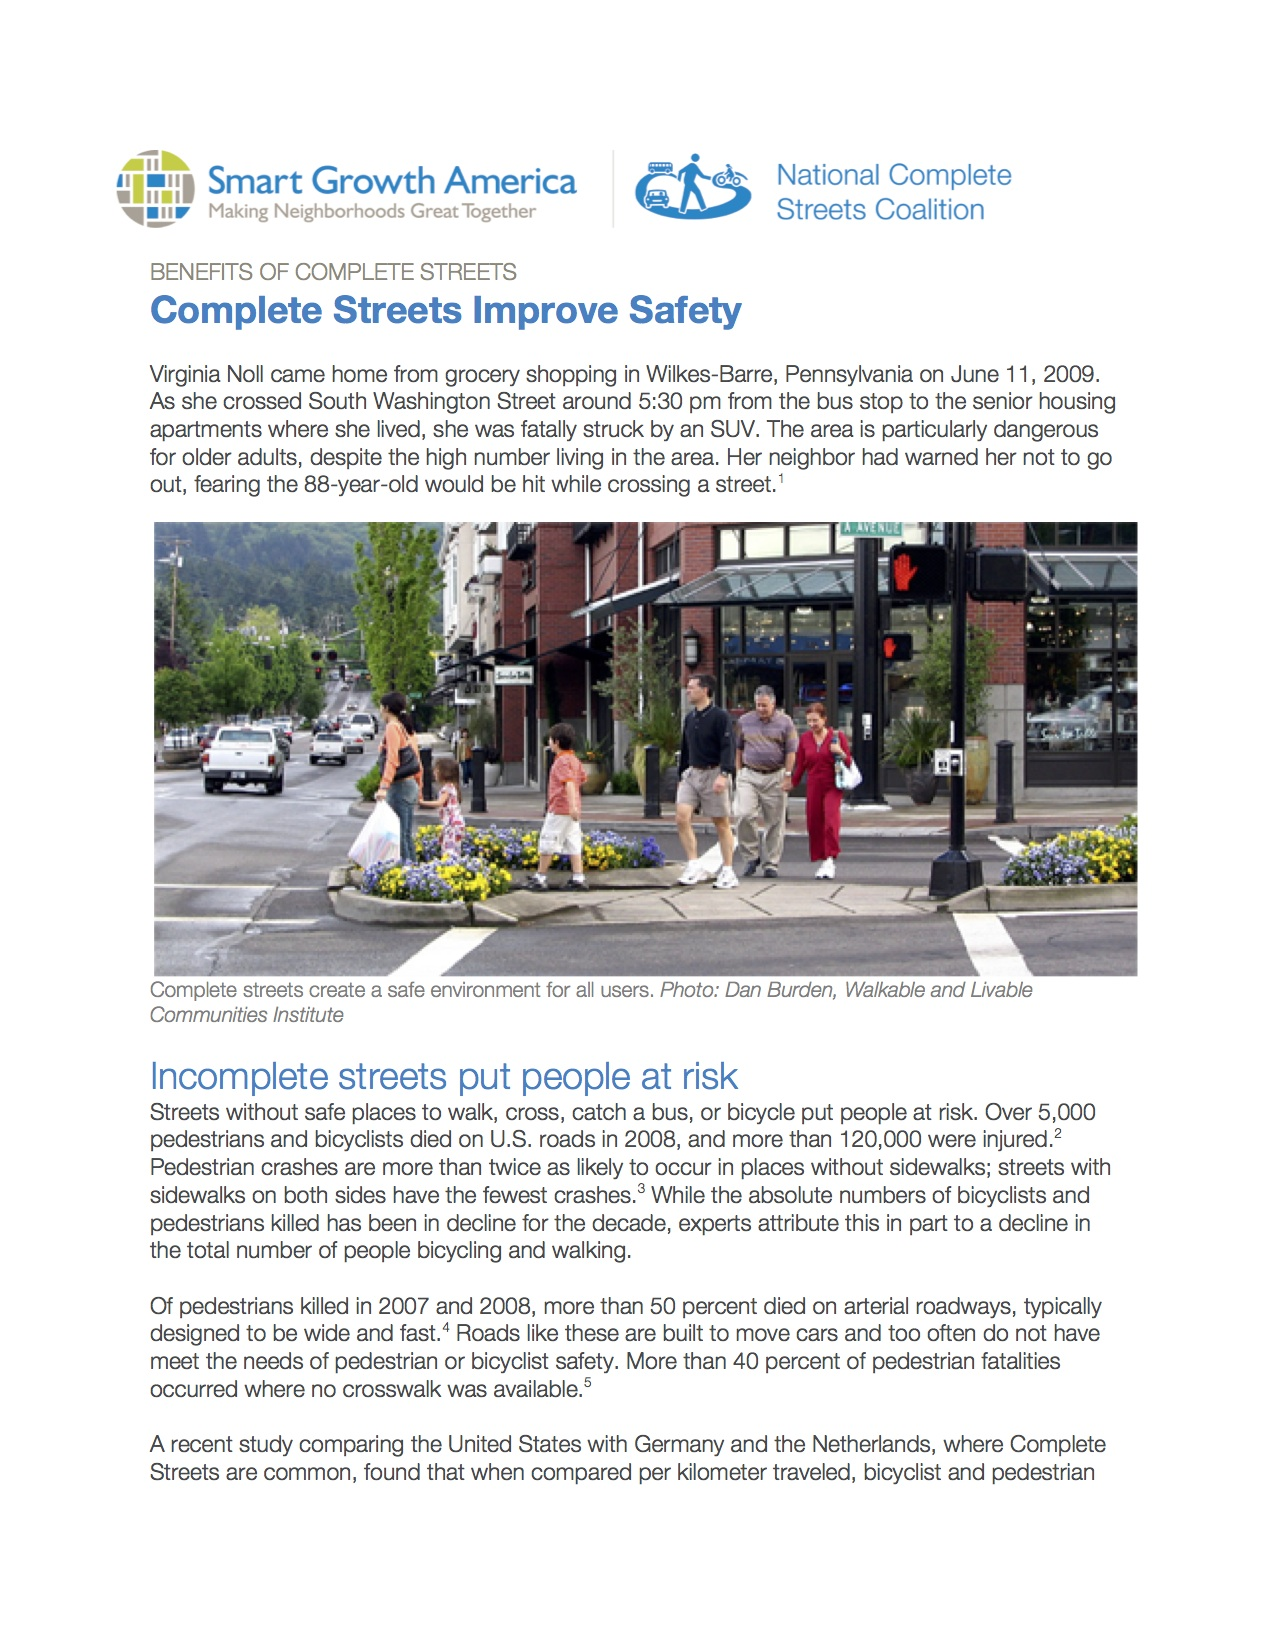 Safety: Benefits of Complete Streets